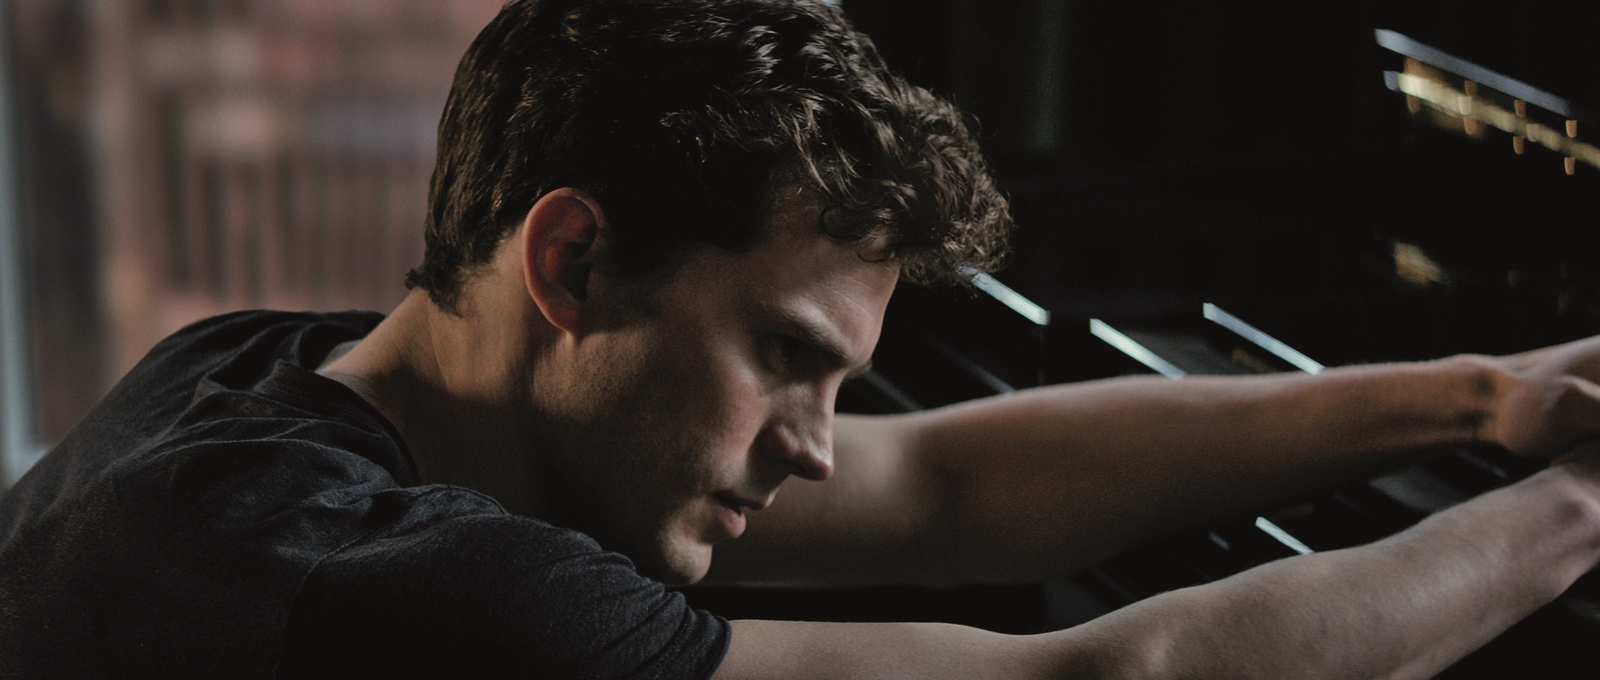 Fifty Shades of Grey-Official Poster Banner PROMO PHOTOS-28JULHO2014-03